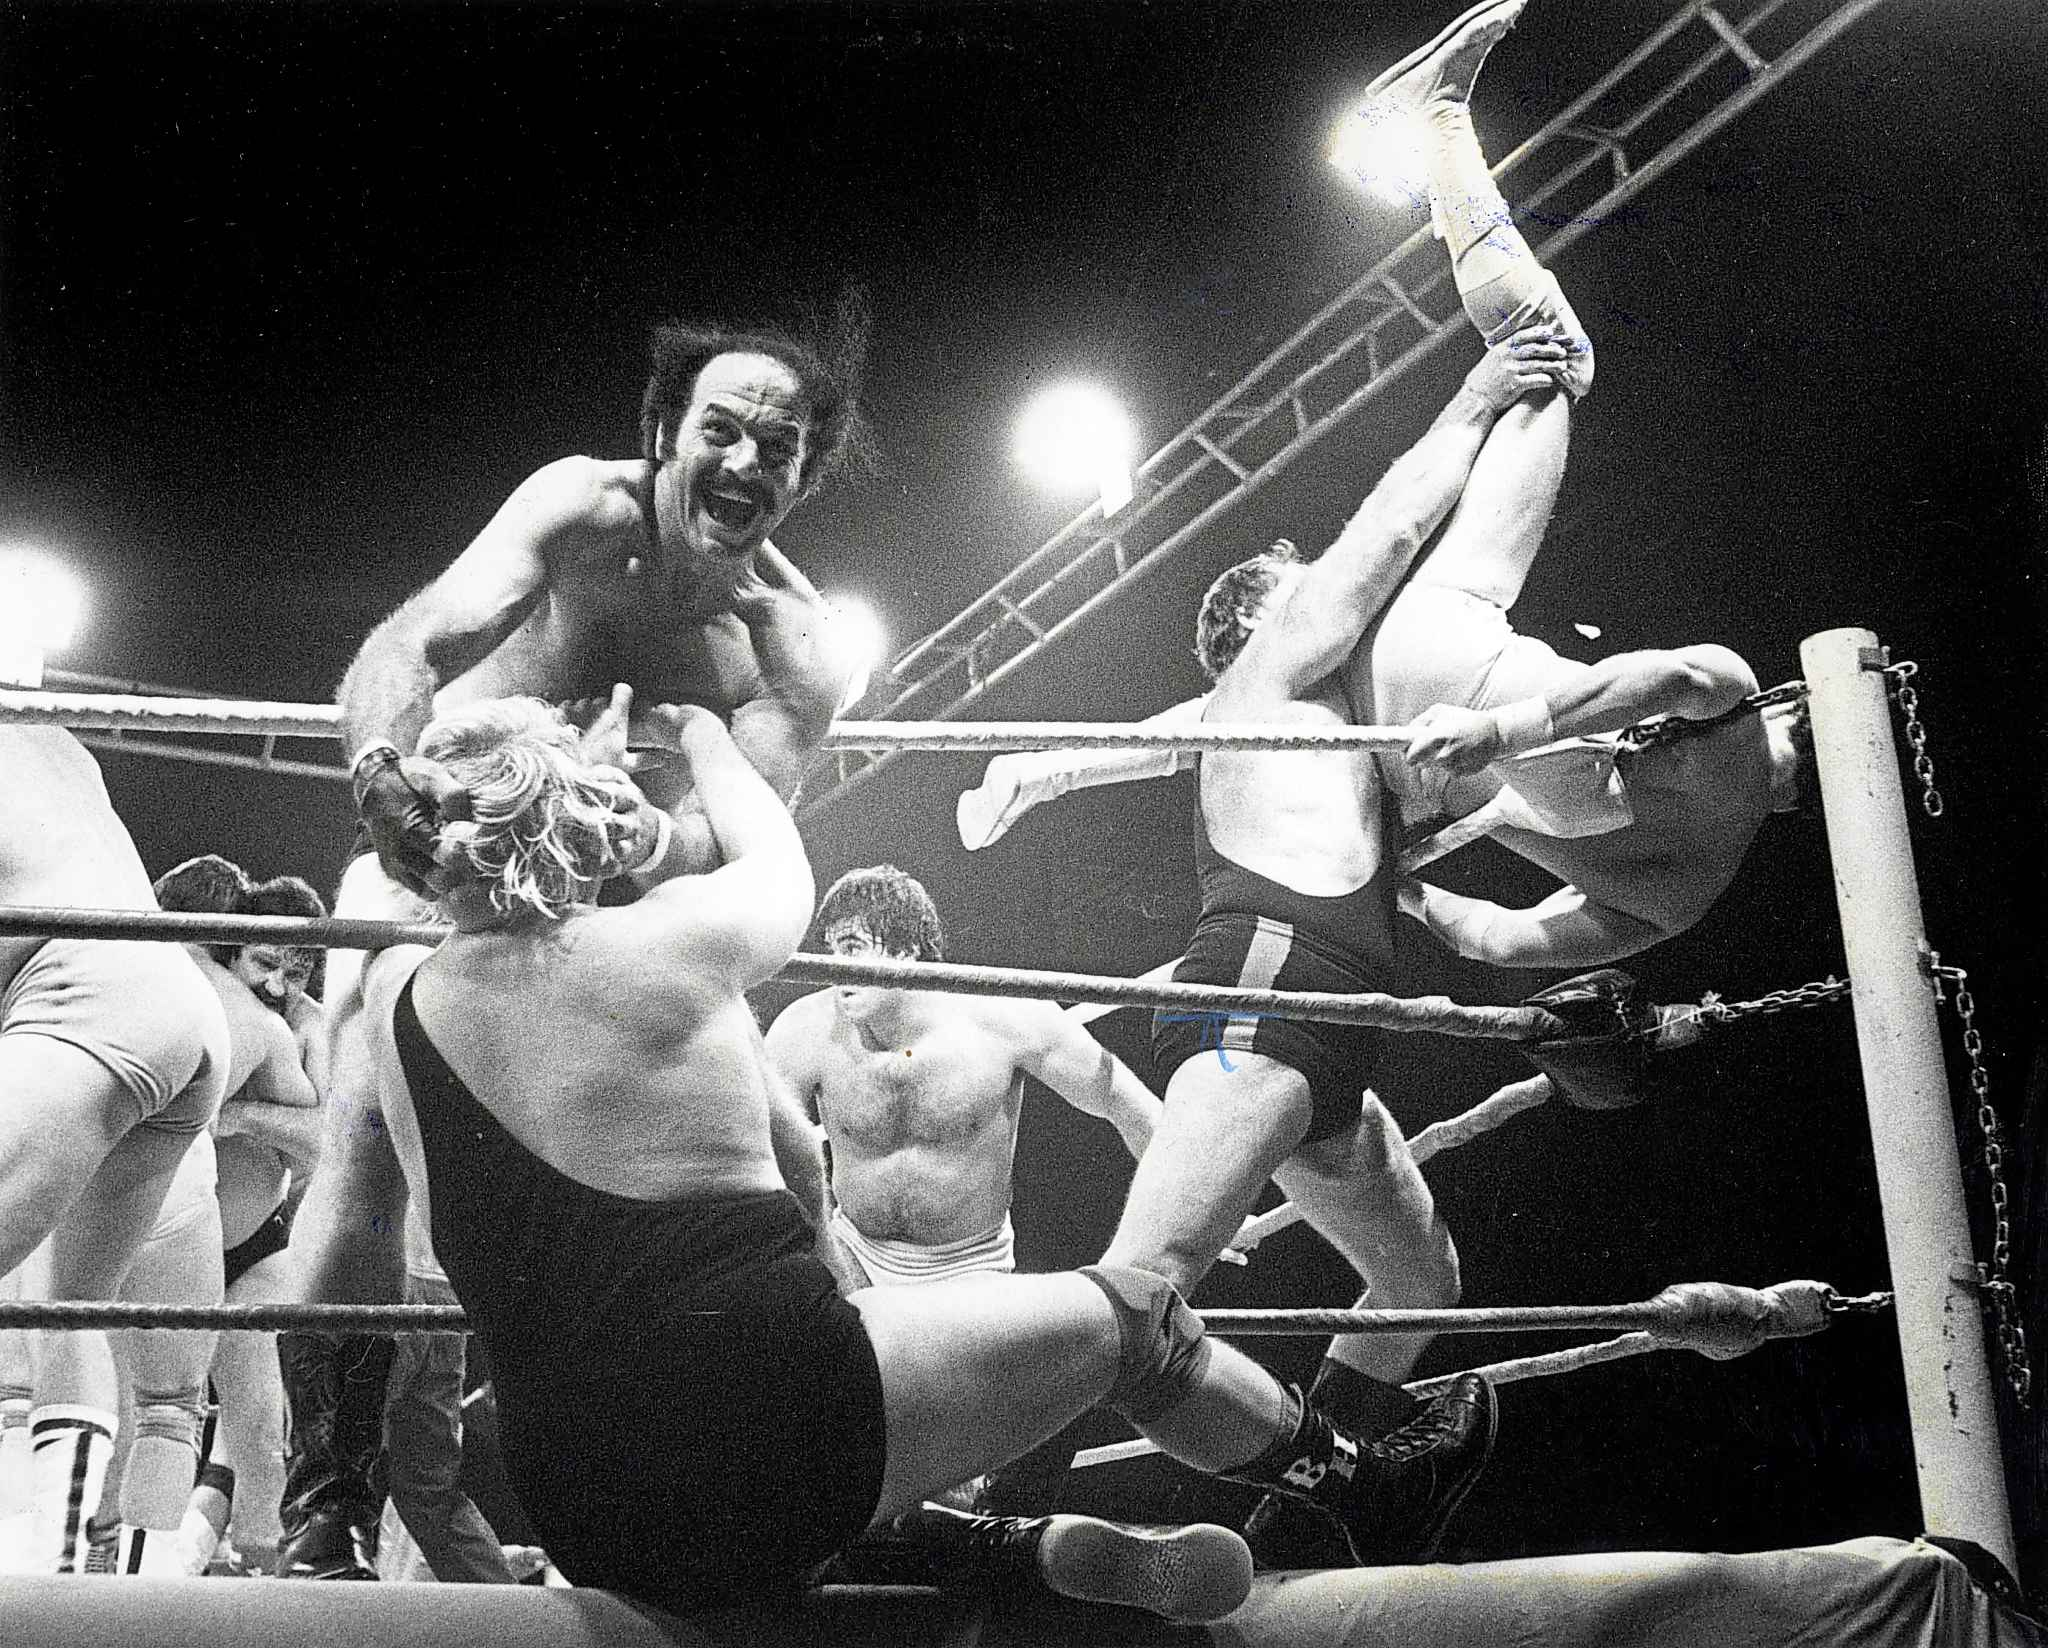 KEN GIGLIOTTI / WINNIPEG FREE PRESS FILES  Blackjack Lanza has Bobby 'The Brain' Heenan by the hair as Brad Rheingans throws an opponent over the top rope at a 1983 match at the Winnipeg arena.